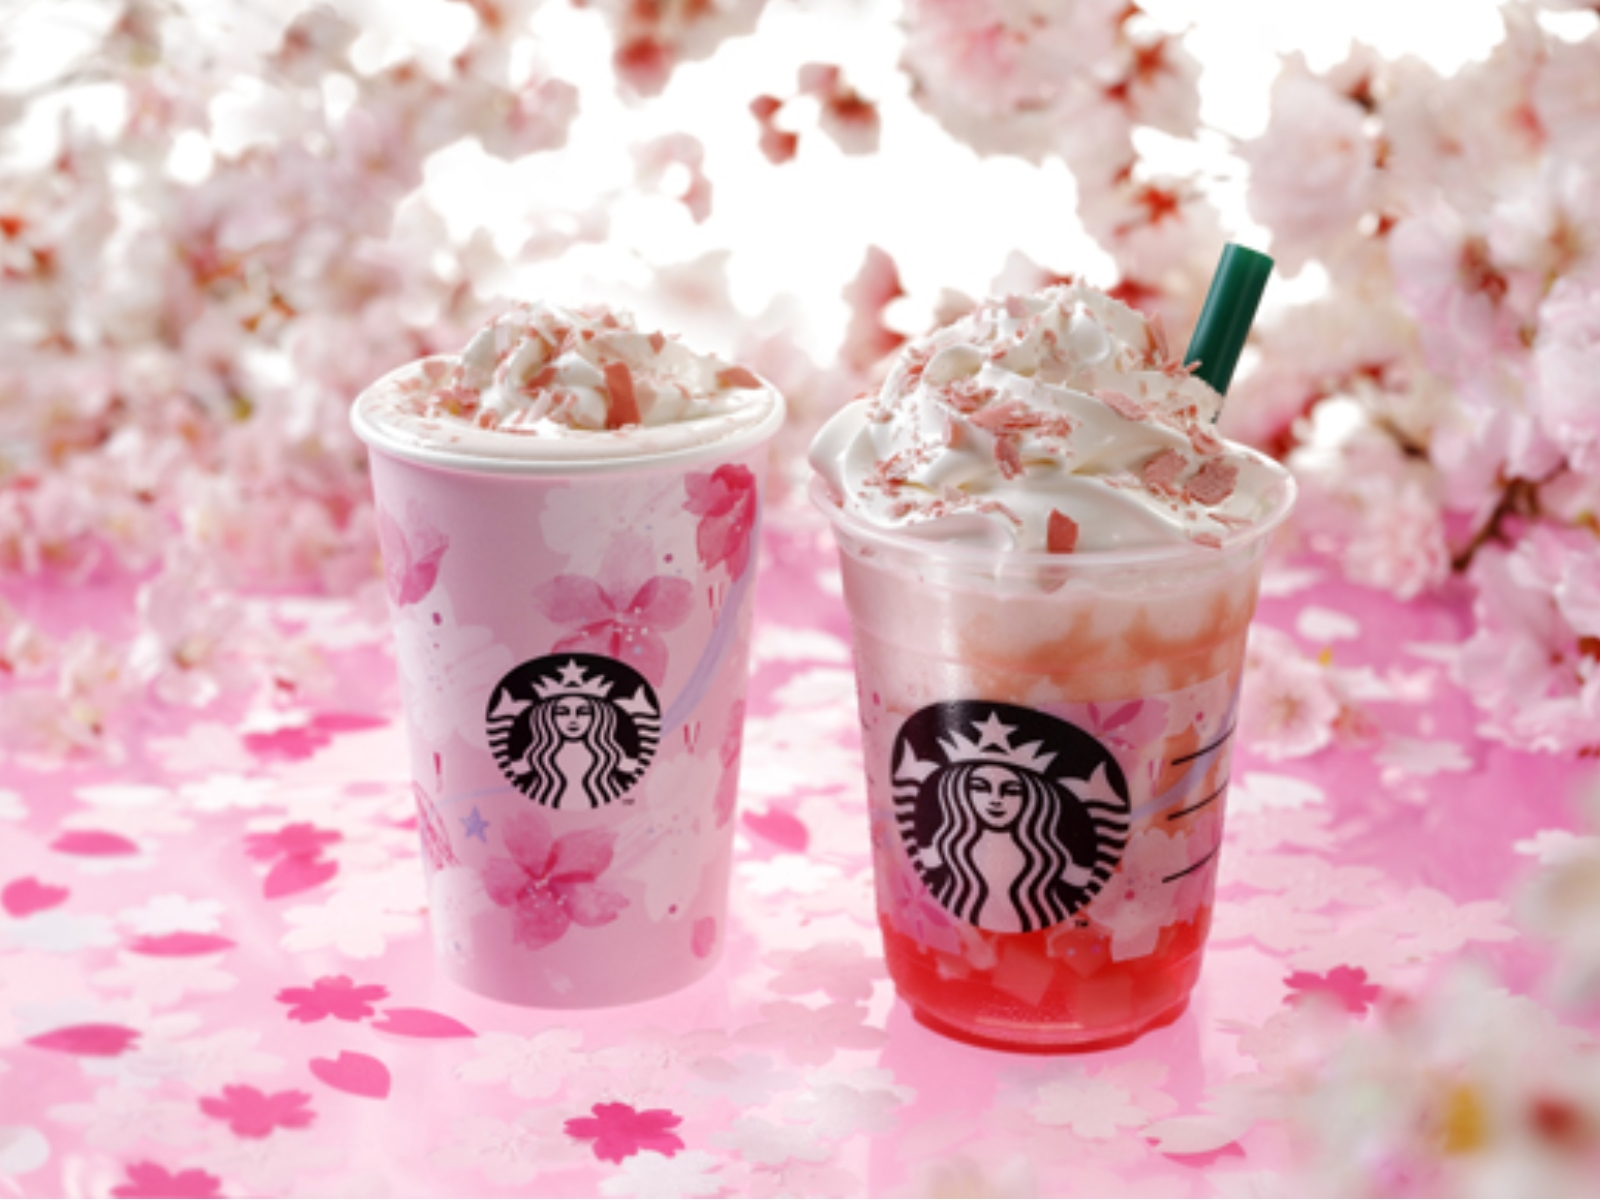 Fall Aesthetic Wallpaper Starbucks Has Started Selling Its Cherry Blossom Themed